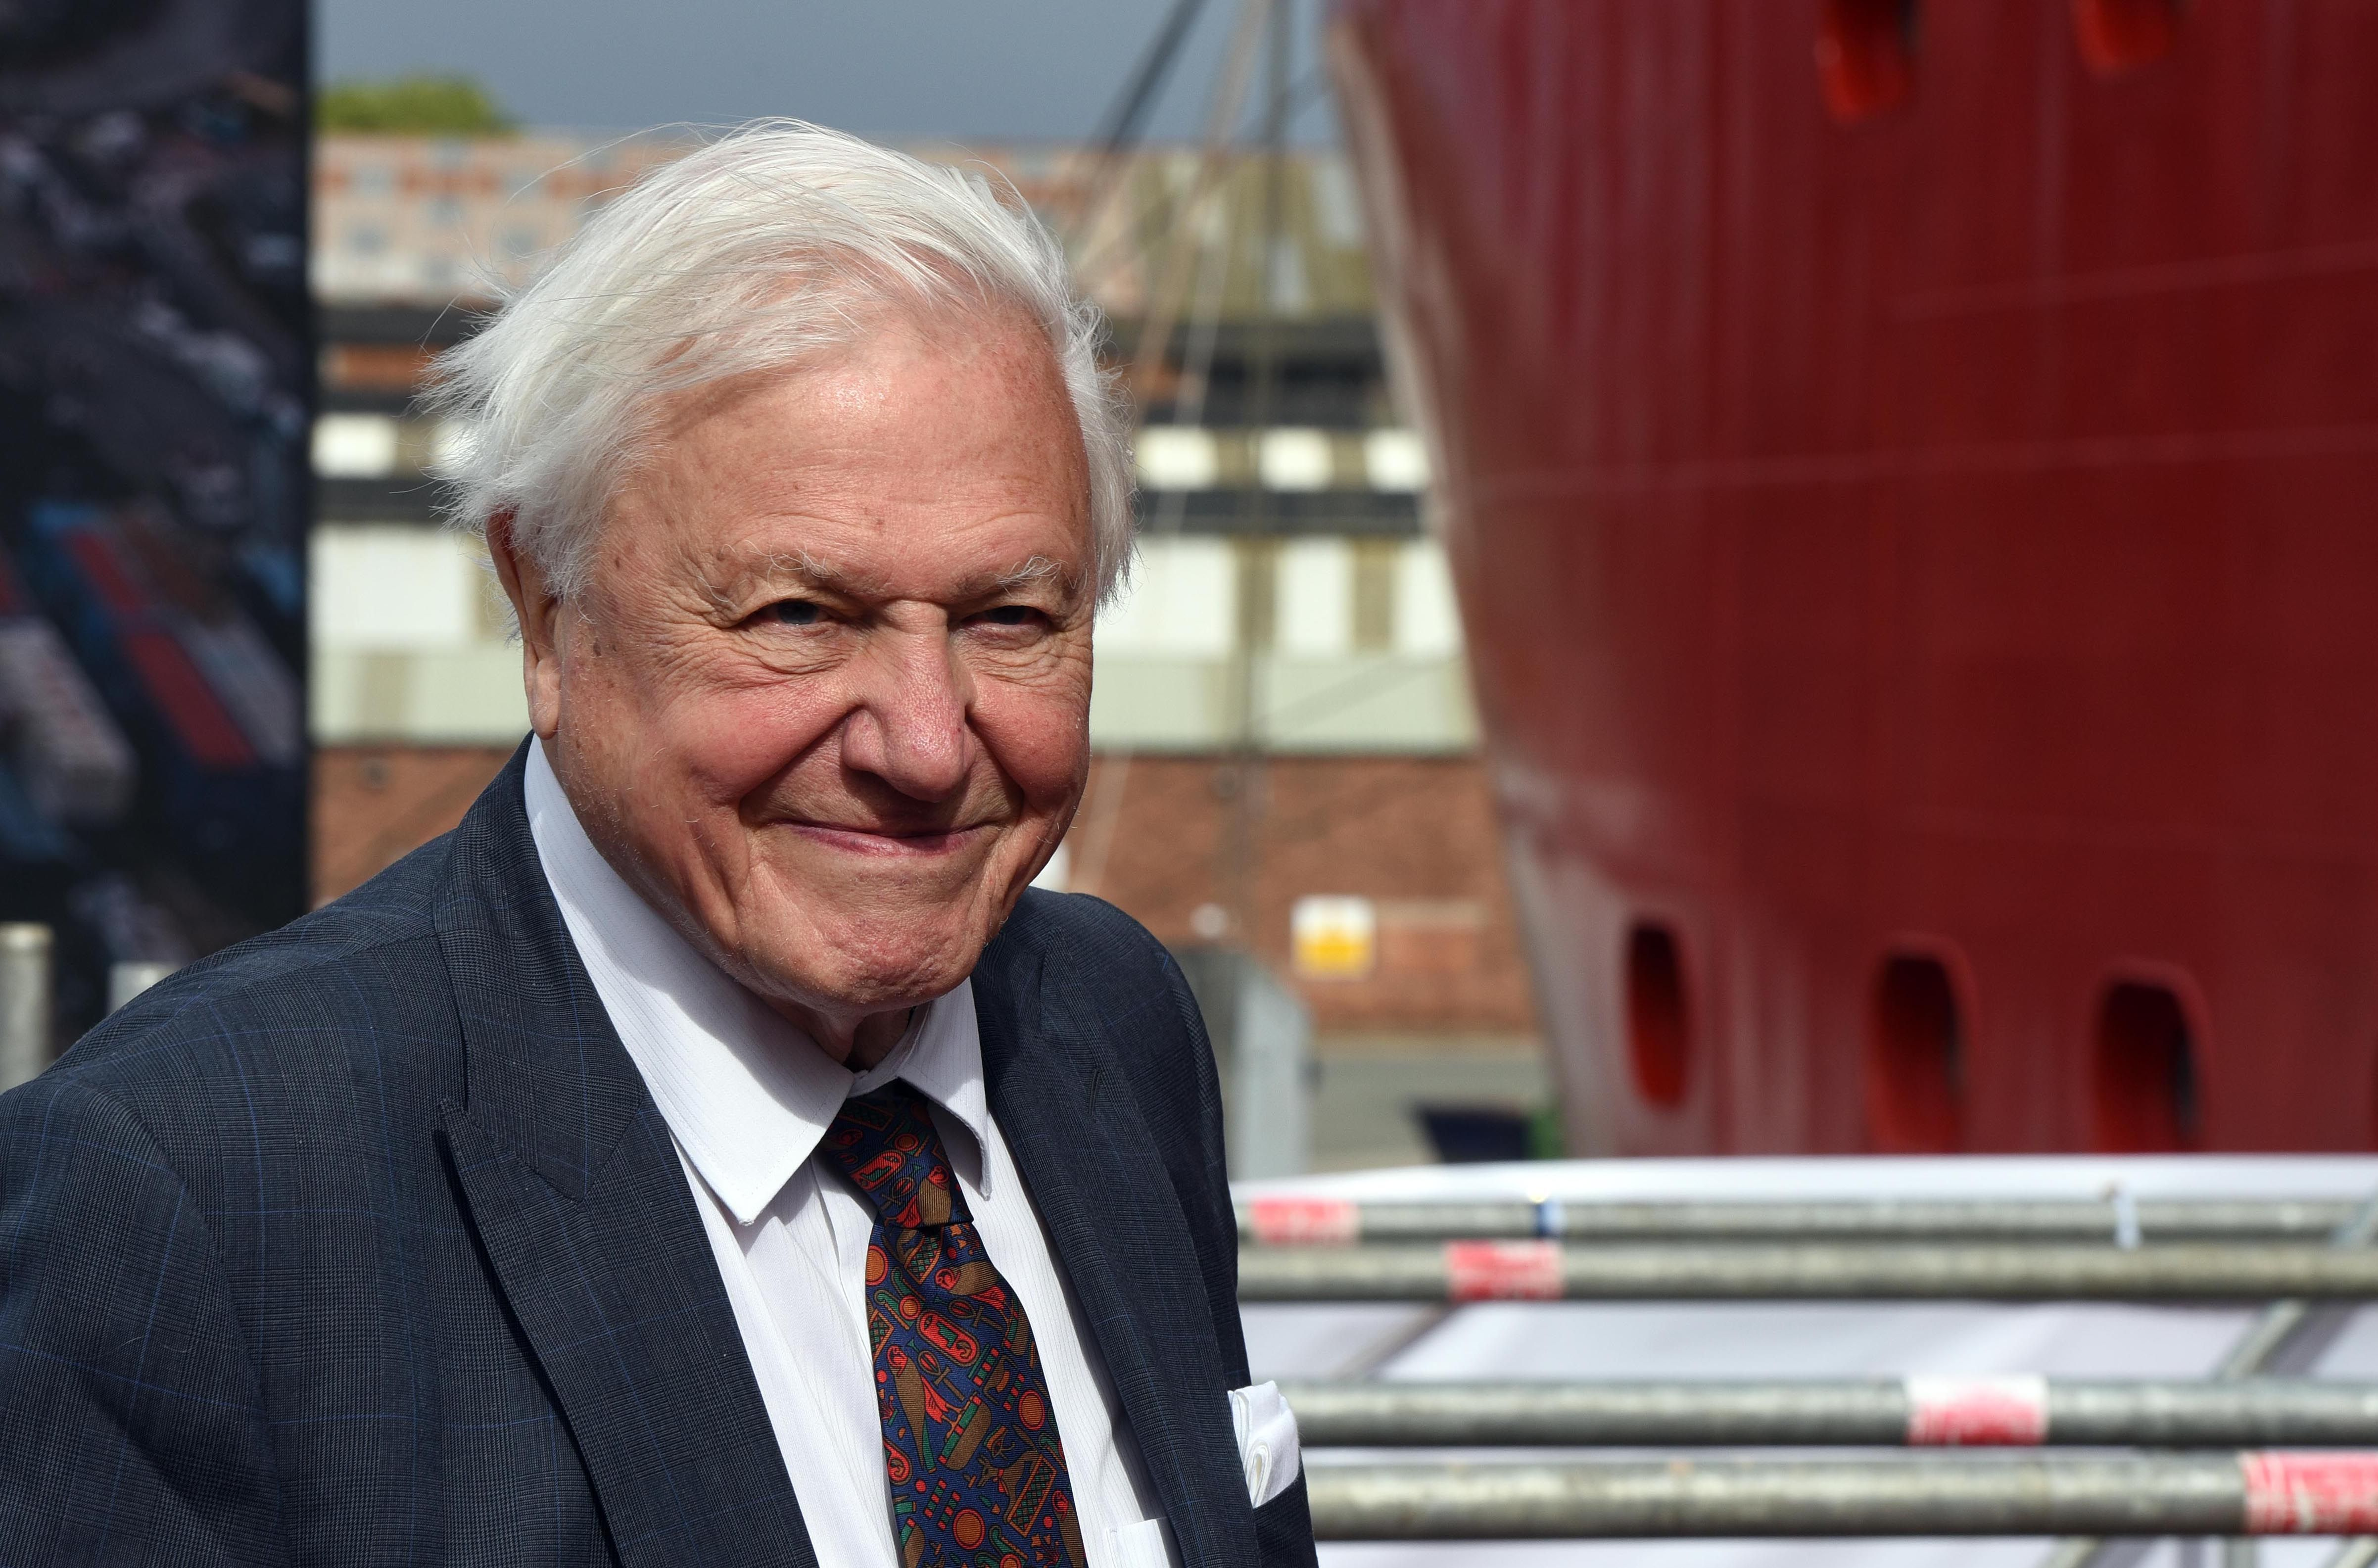 Sir David Attenborough's groundbreaking new documentary gets air date - and it's so soon